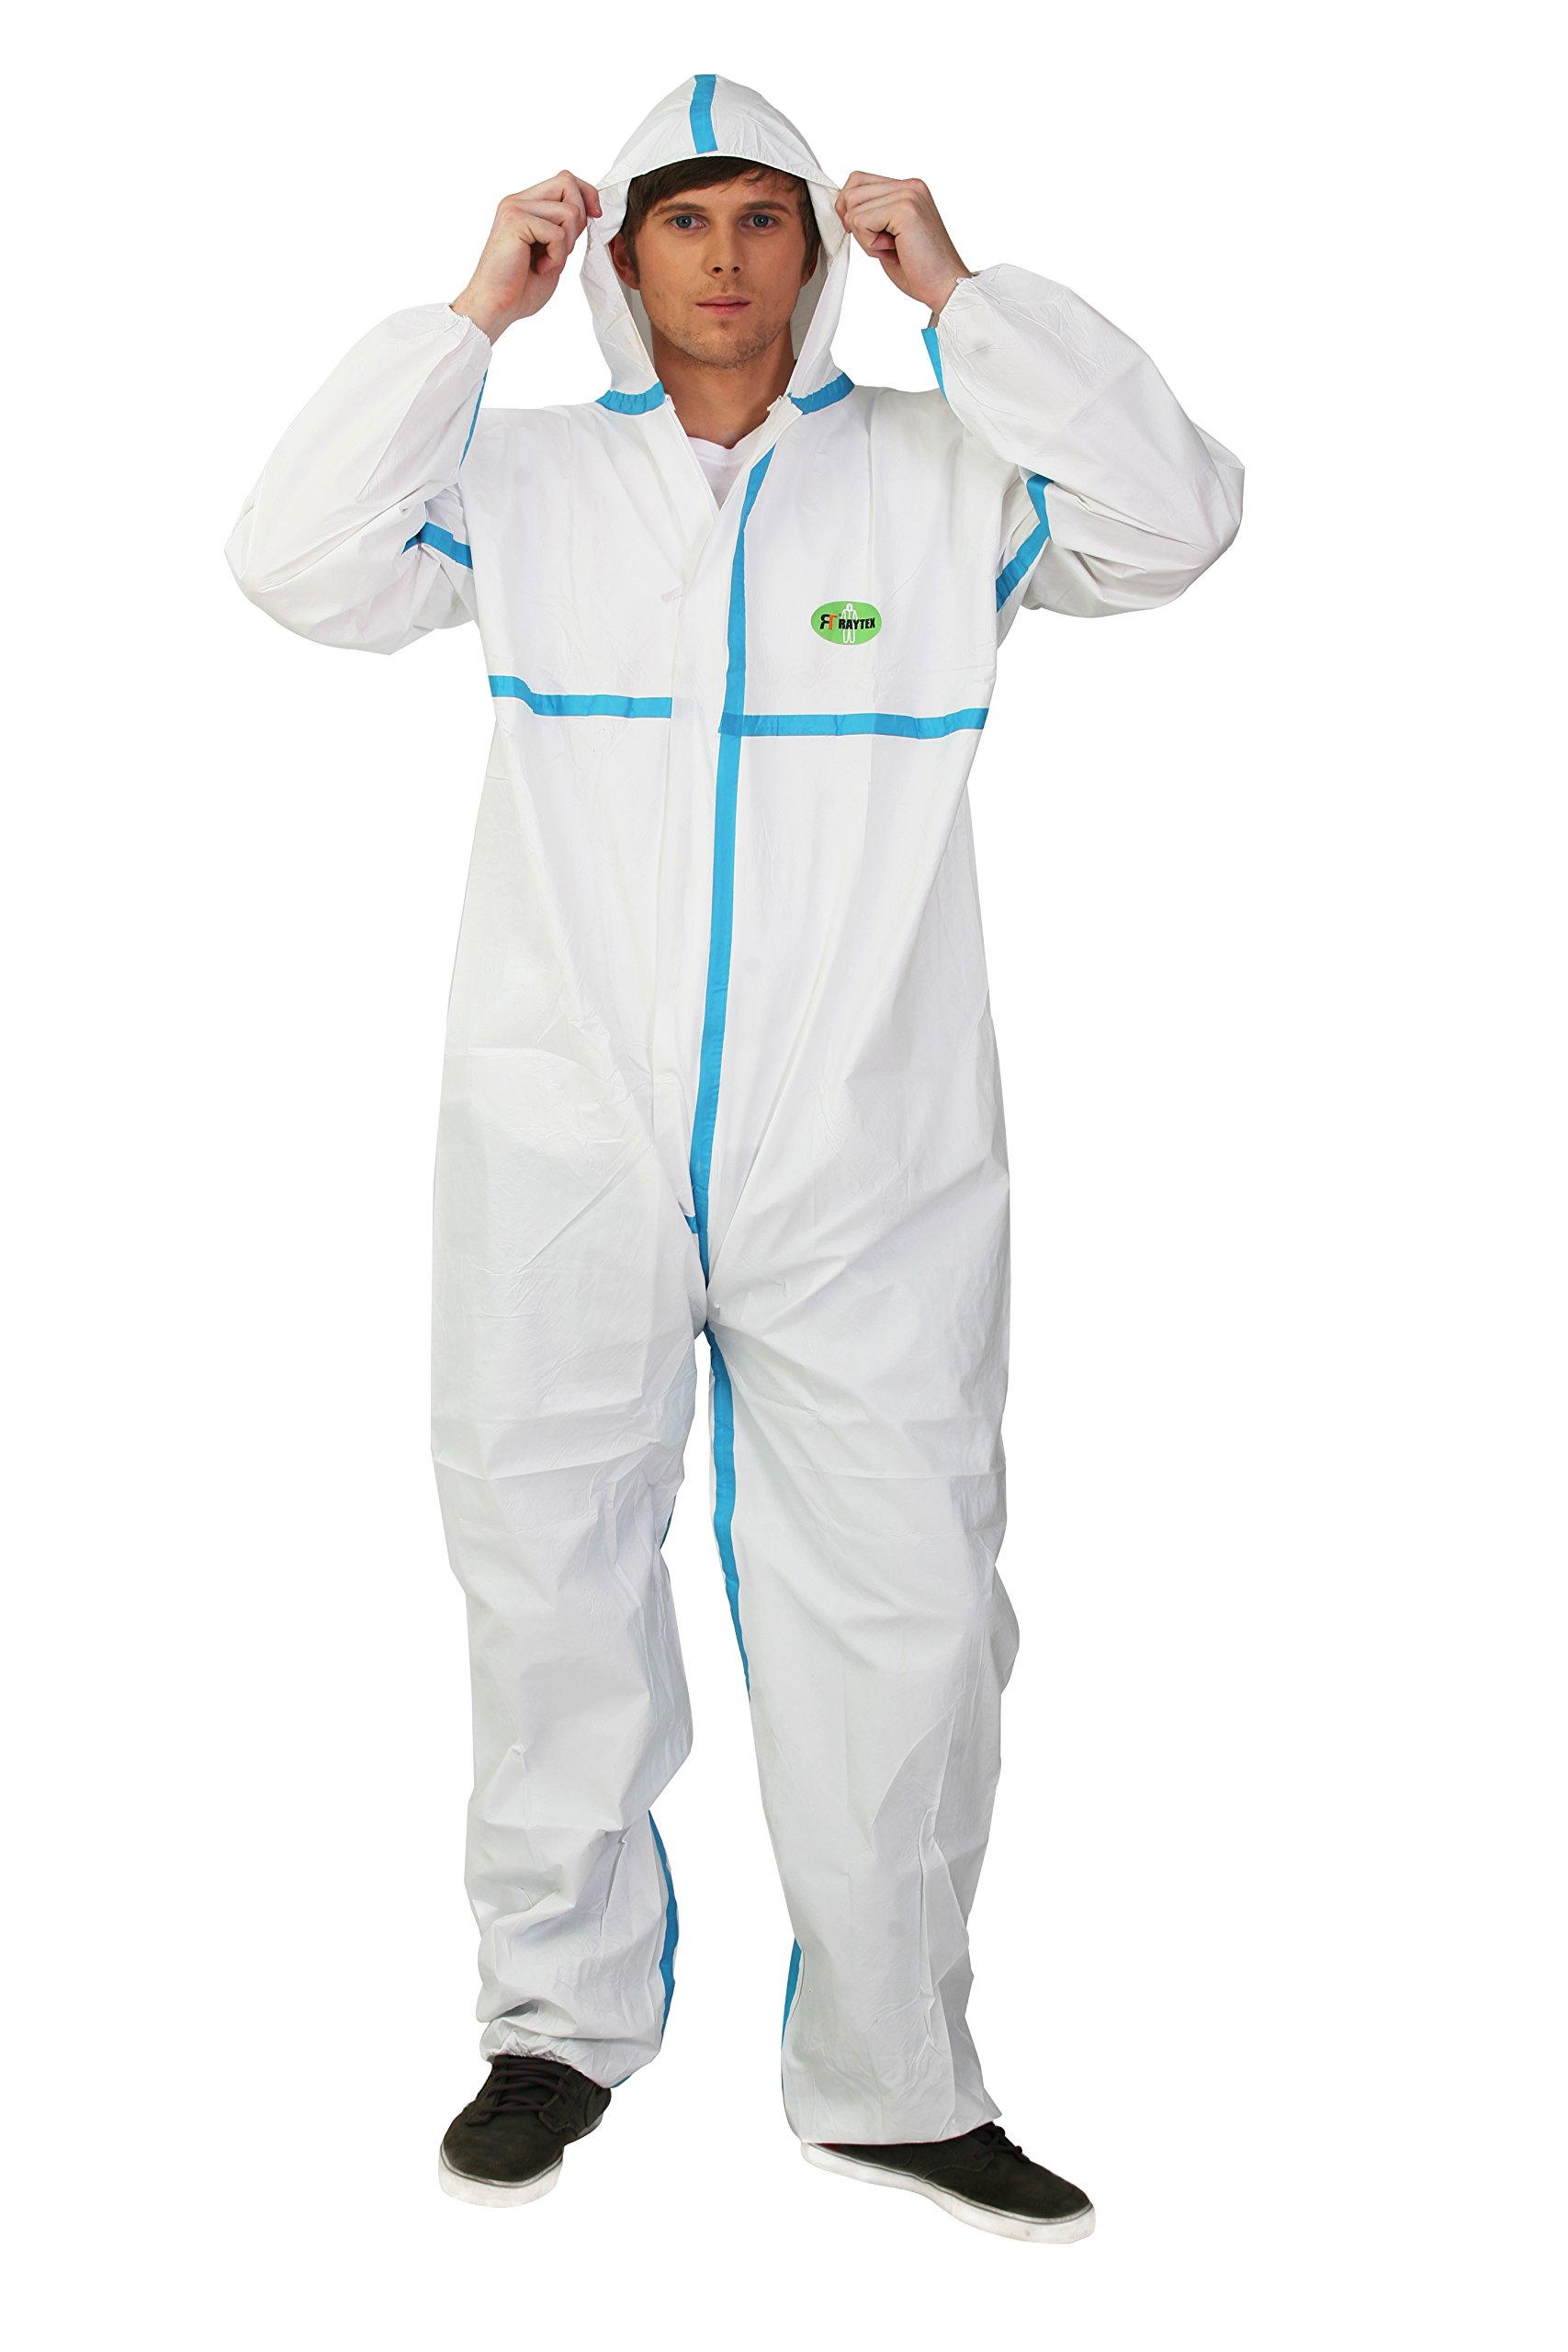 Raygard 30223 Disposable Chemical Protective Coverall Microporous Suit Taped Sealed Seams with Hood, Elastic Wrist, Ankles and Waist,Front Zipper Closure for Spray Paint Workwear(2X-Large, White) by Raytex (Image #9)